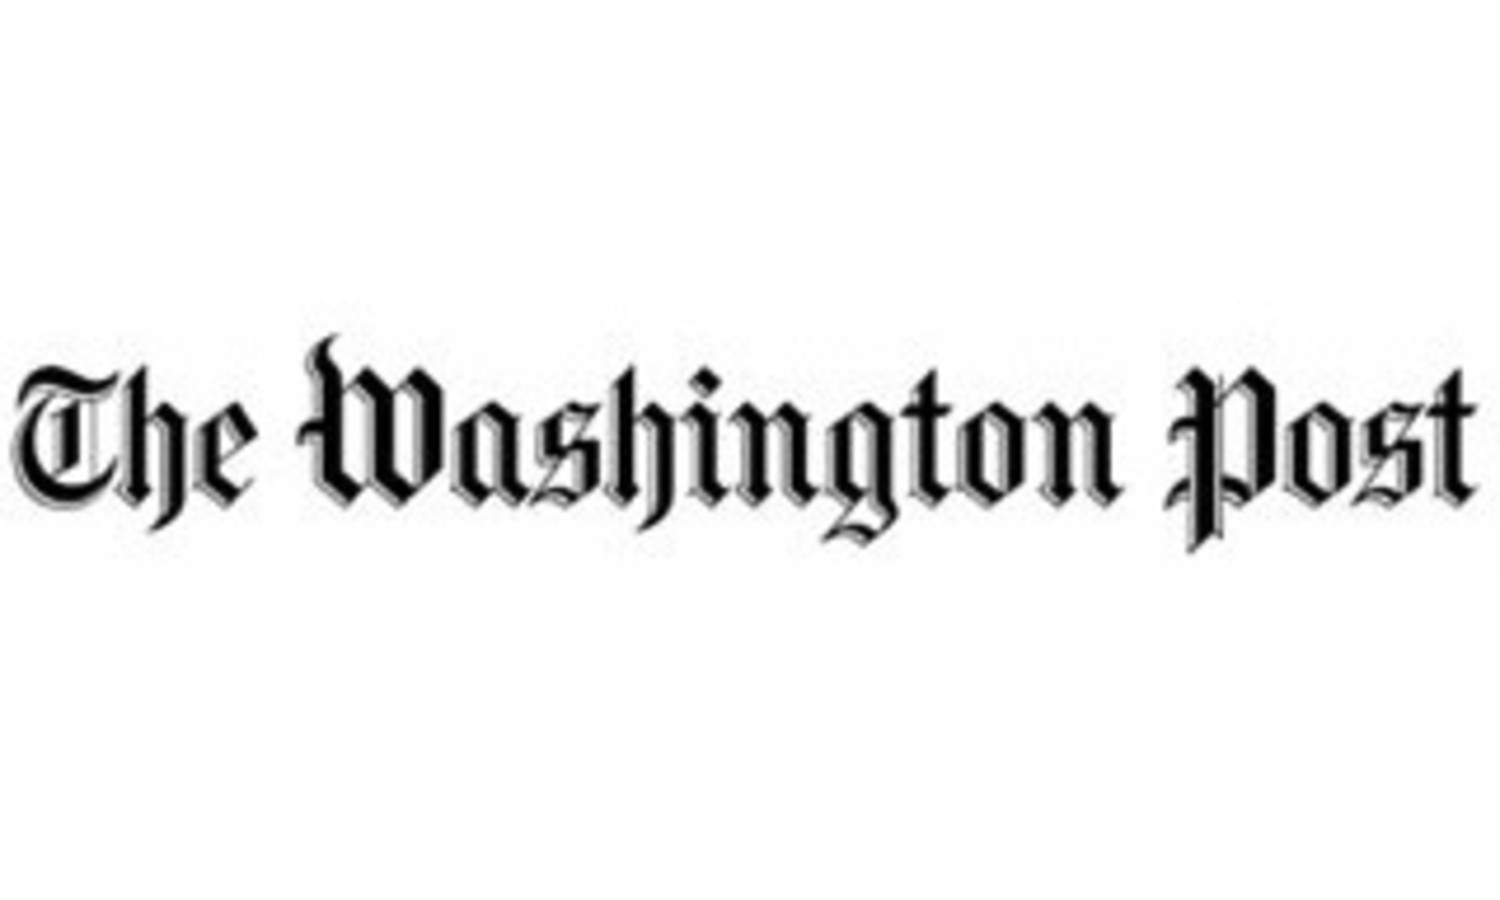 Washington Post practicas profesionales